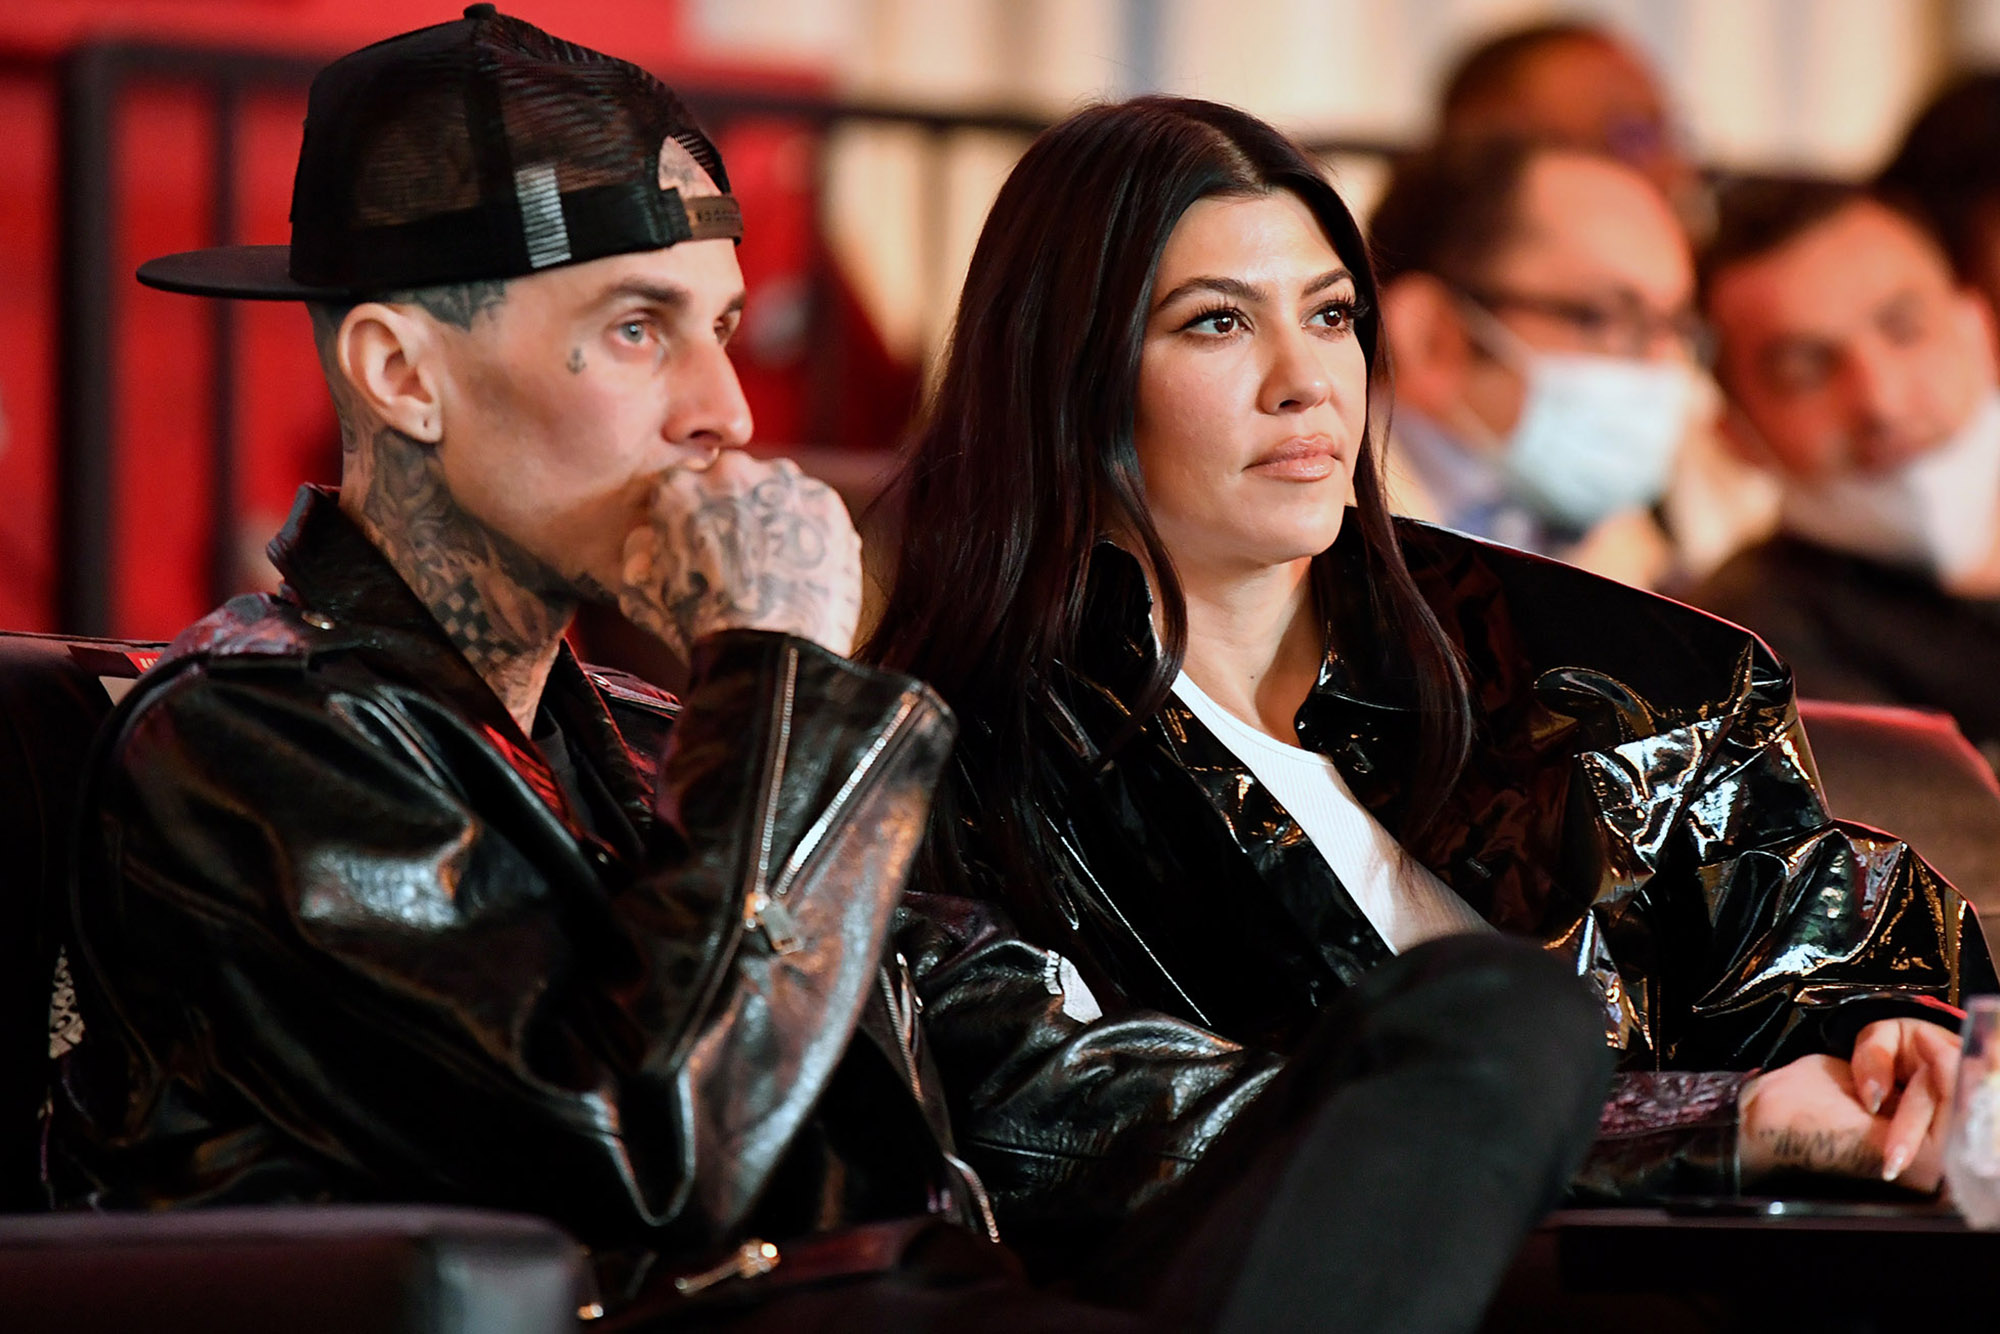 Travis Barker gets new tattoo of Kourtney Kardashian's name